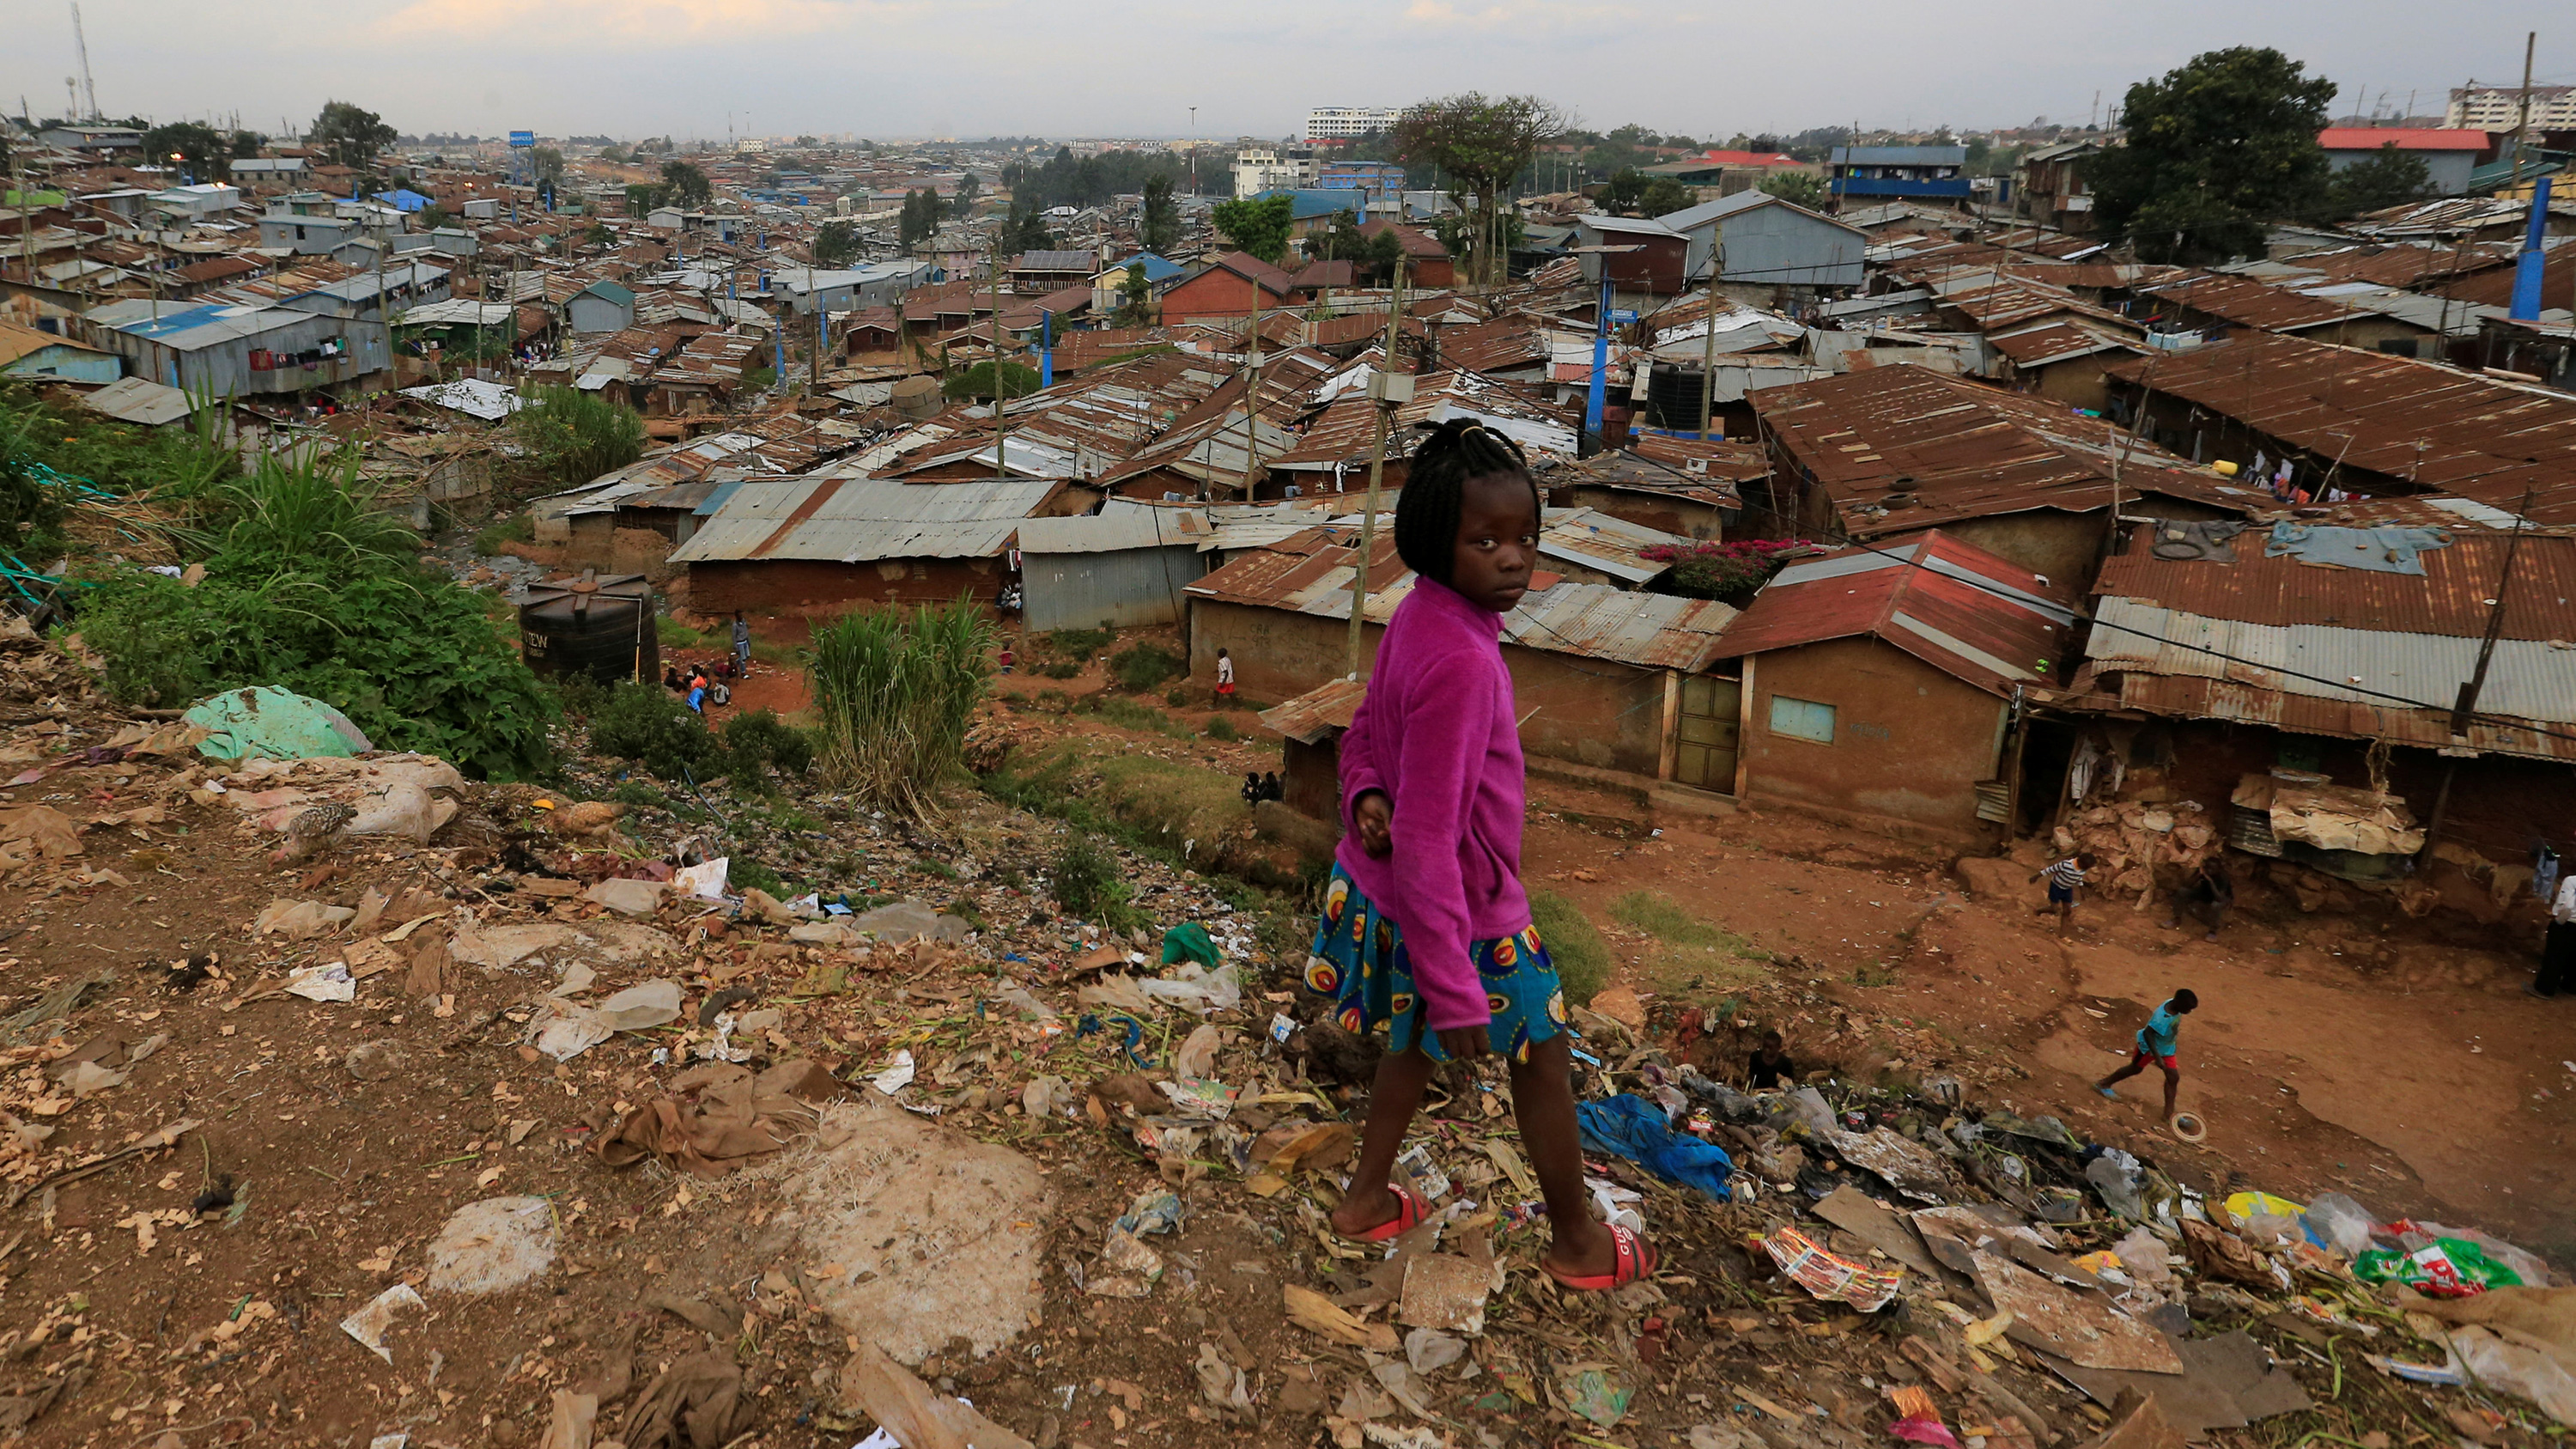 The photo shows a girl standing atop a hill littered with trash overlooking a residential area of poor houses with rusty metal roofing.